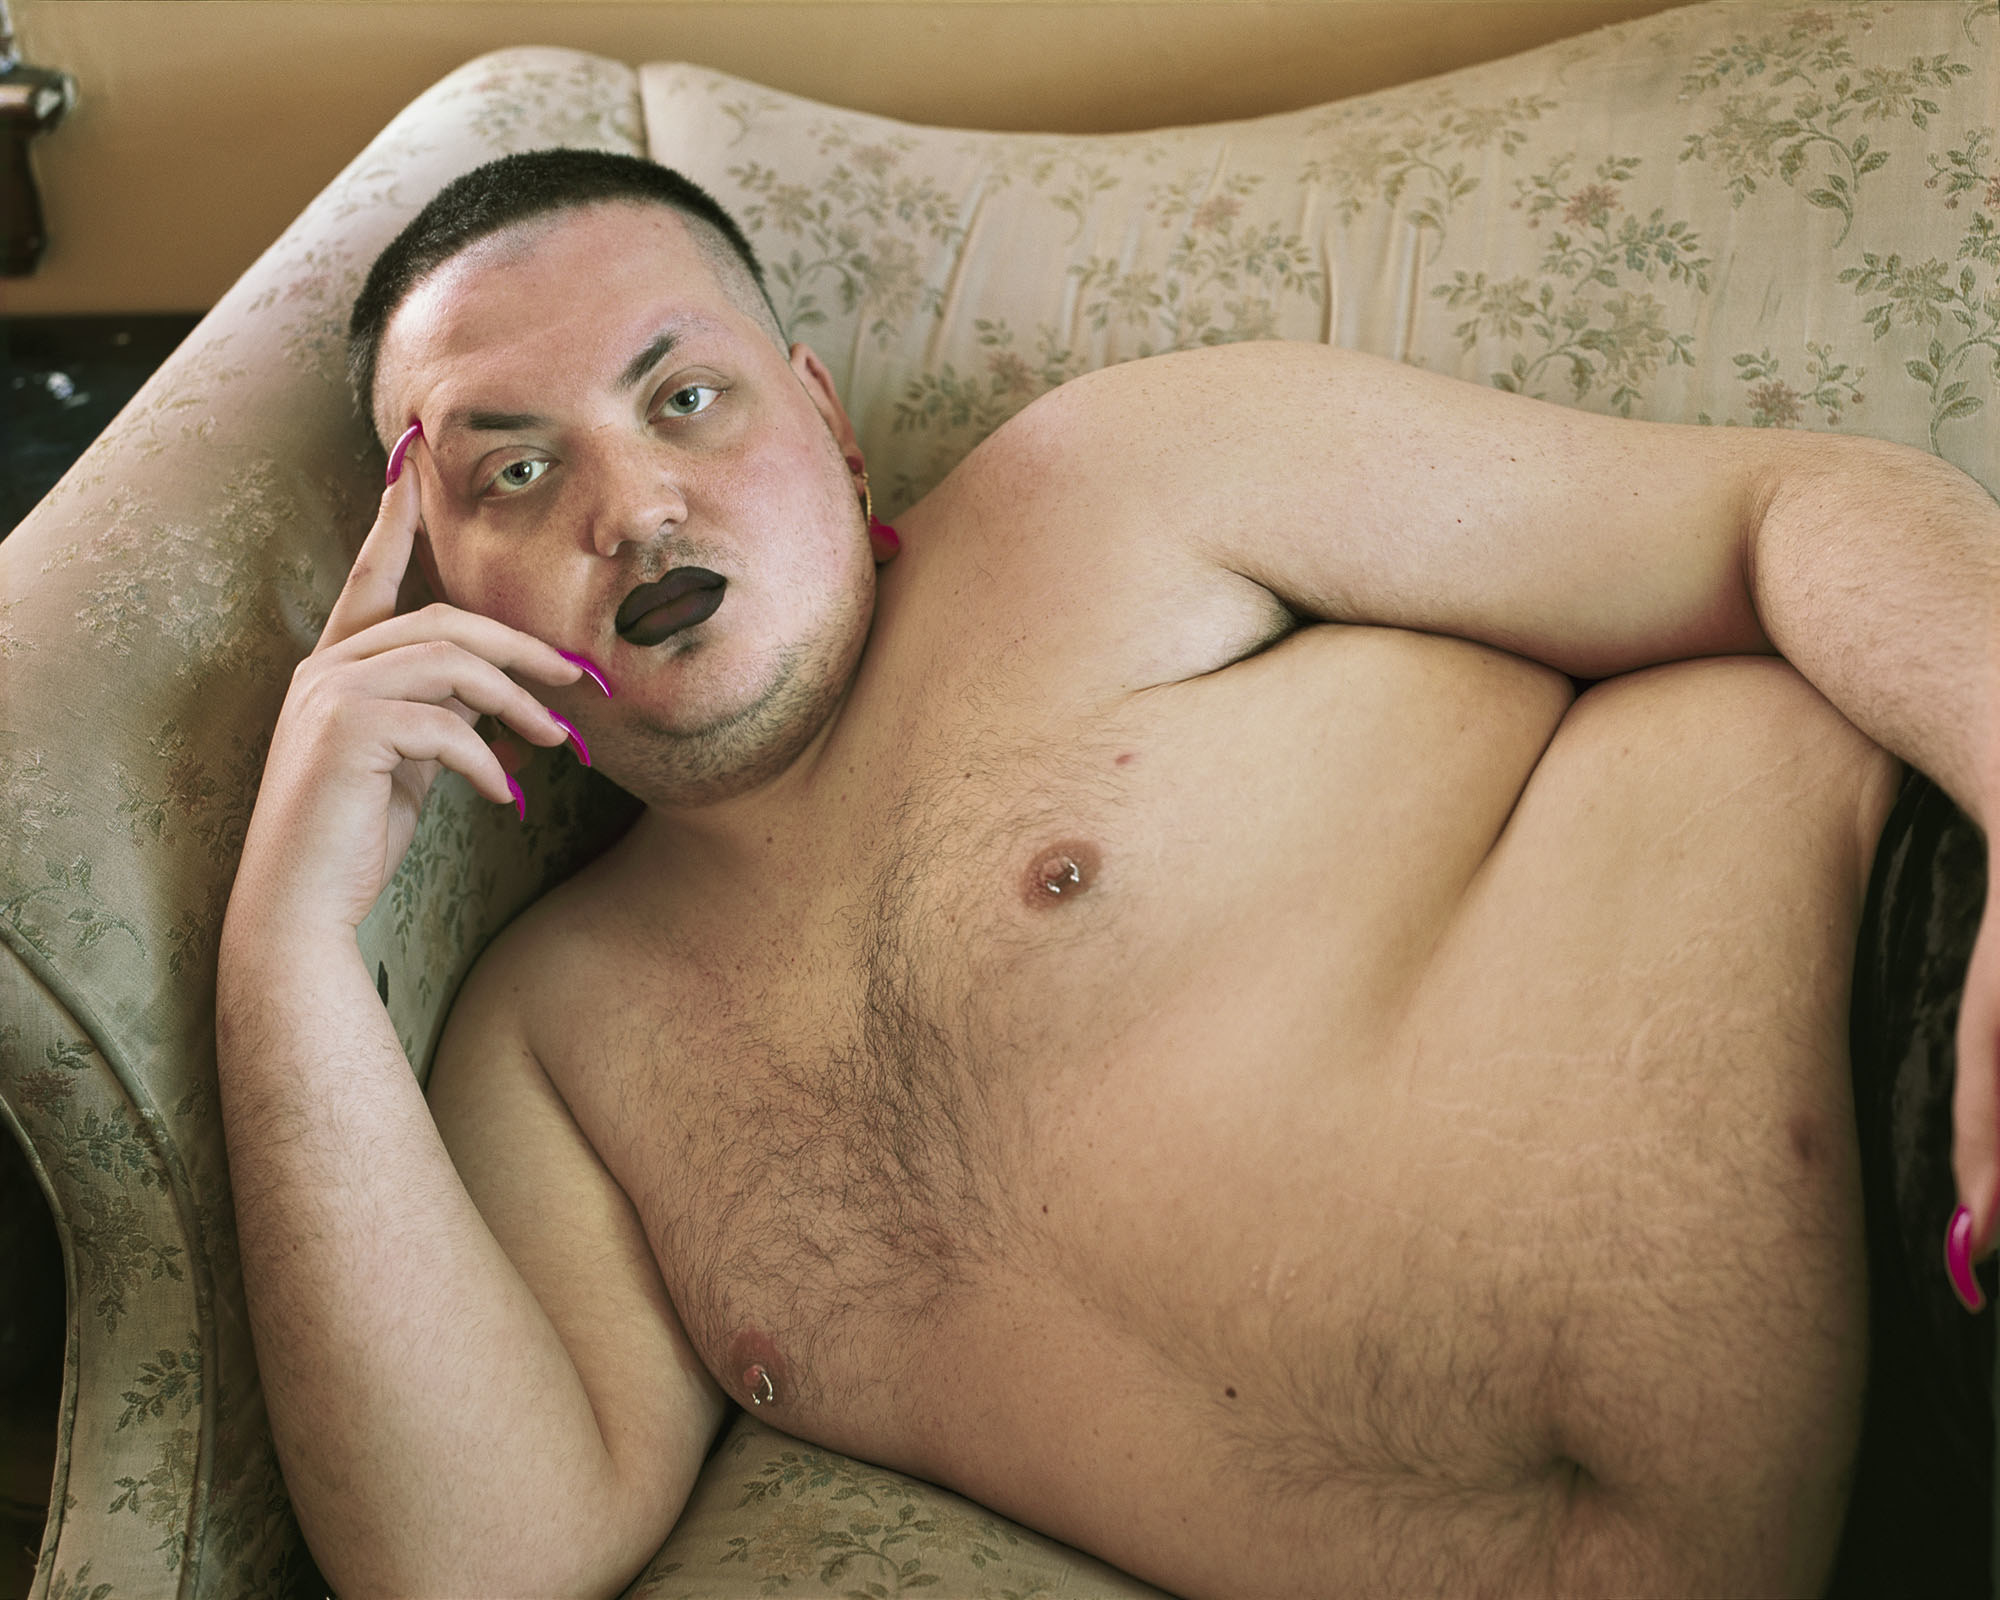 A man with pink nails and black lipstick lounges topless on a couch